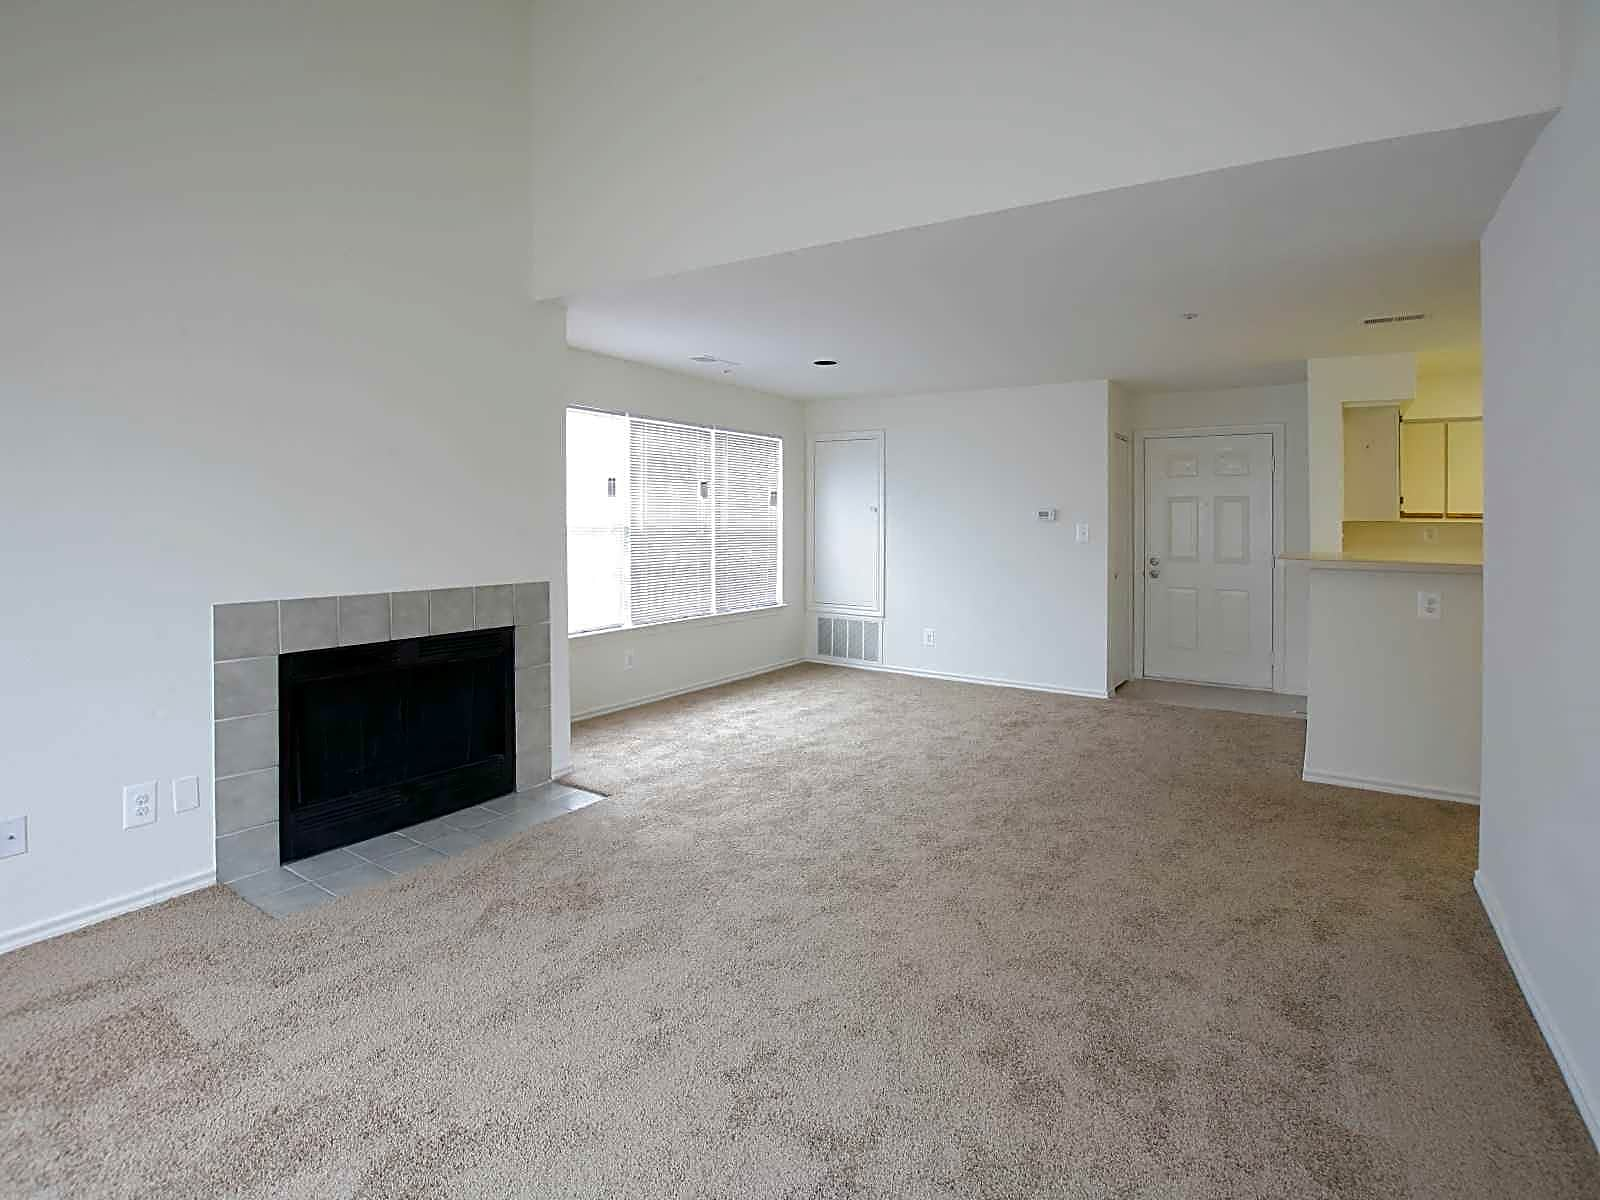 Photo: Gaithersburg Apartment for Rent - $1259.00 / month; 1 Bd & 1 Ba